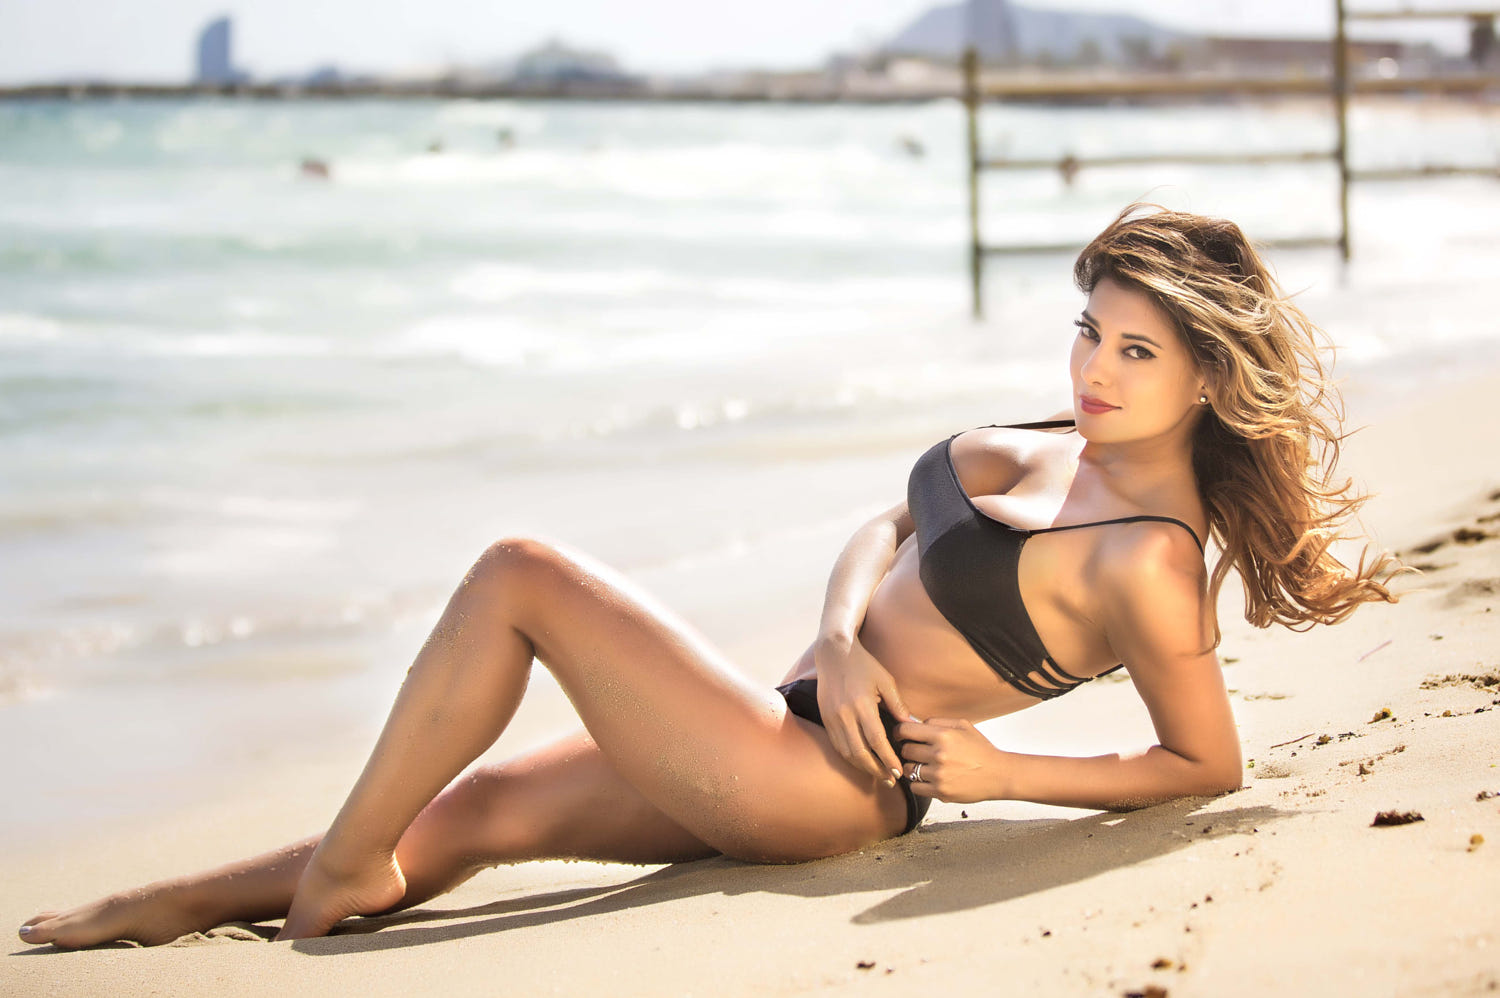 Vivi Castrillon Hot Pose At The Beach - Vivi Castrillon Hot Pose At The Beach